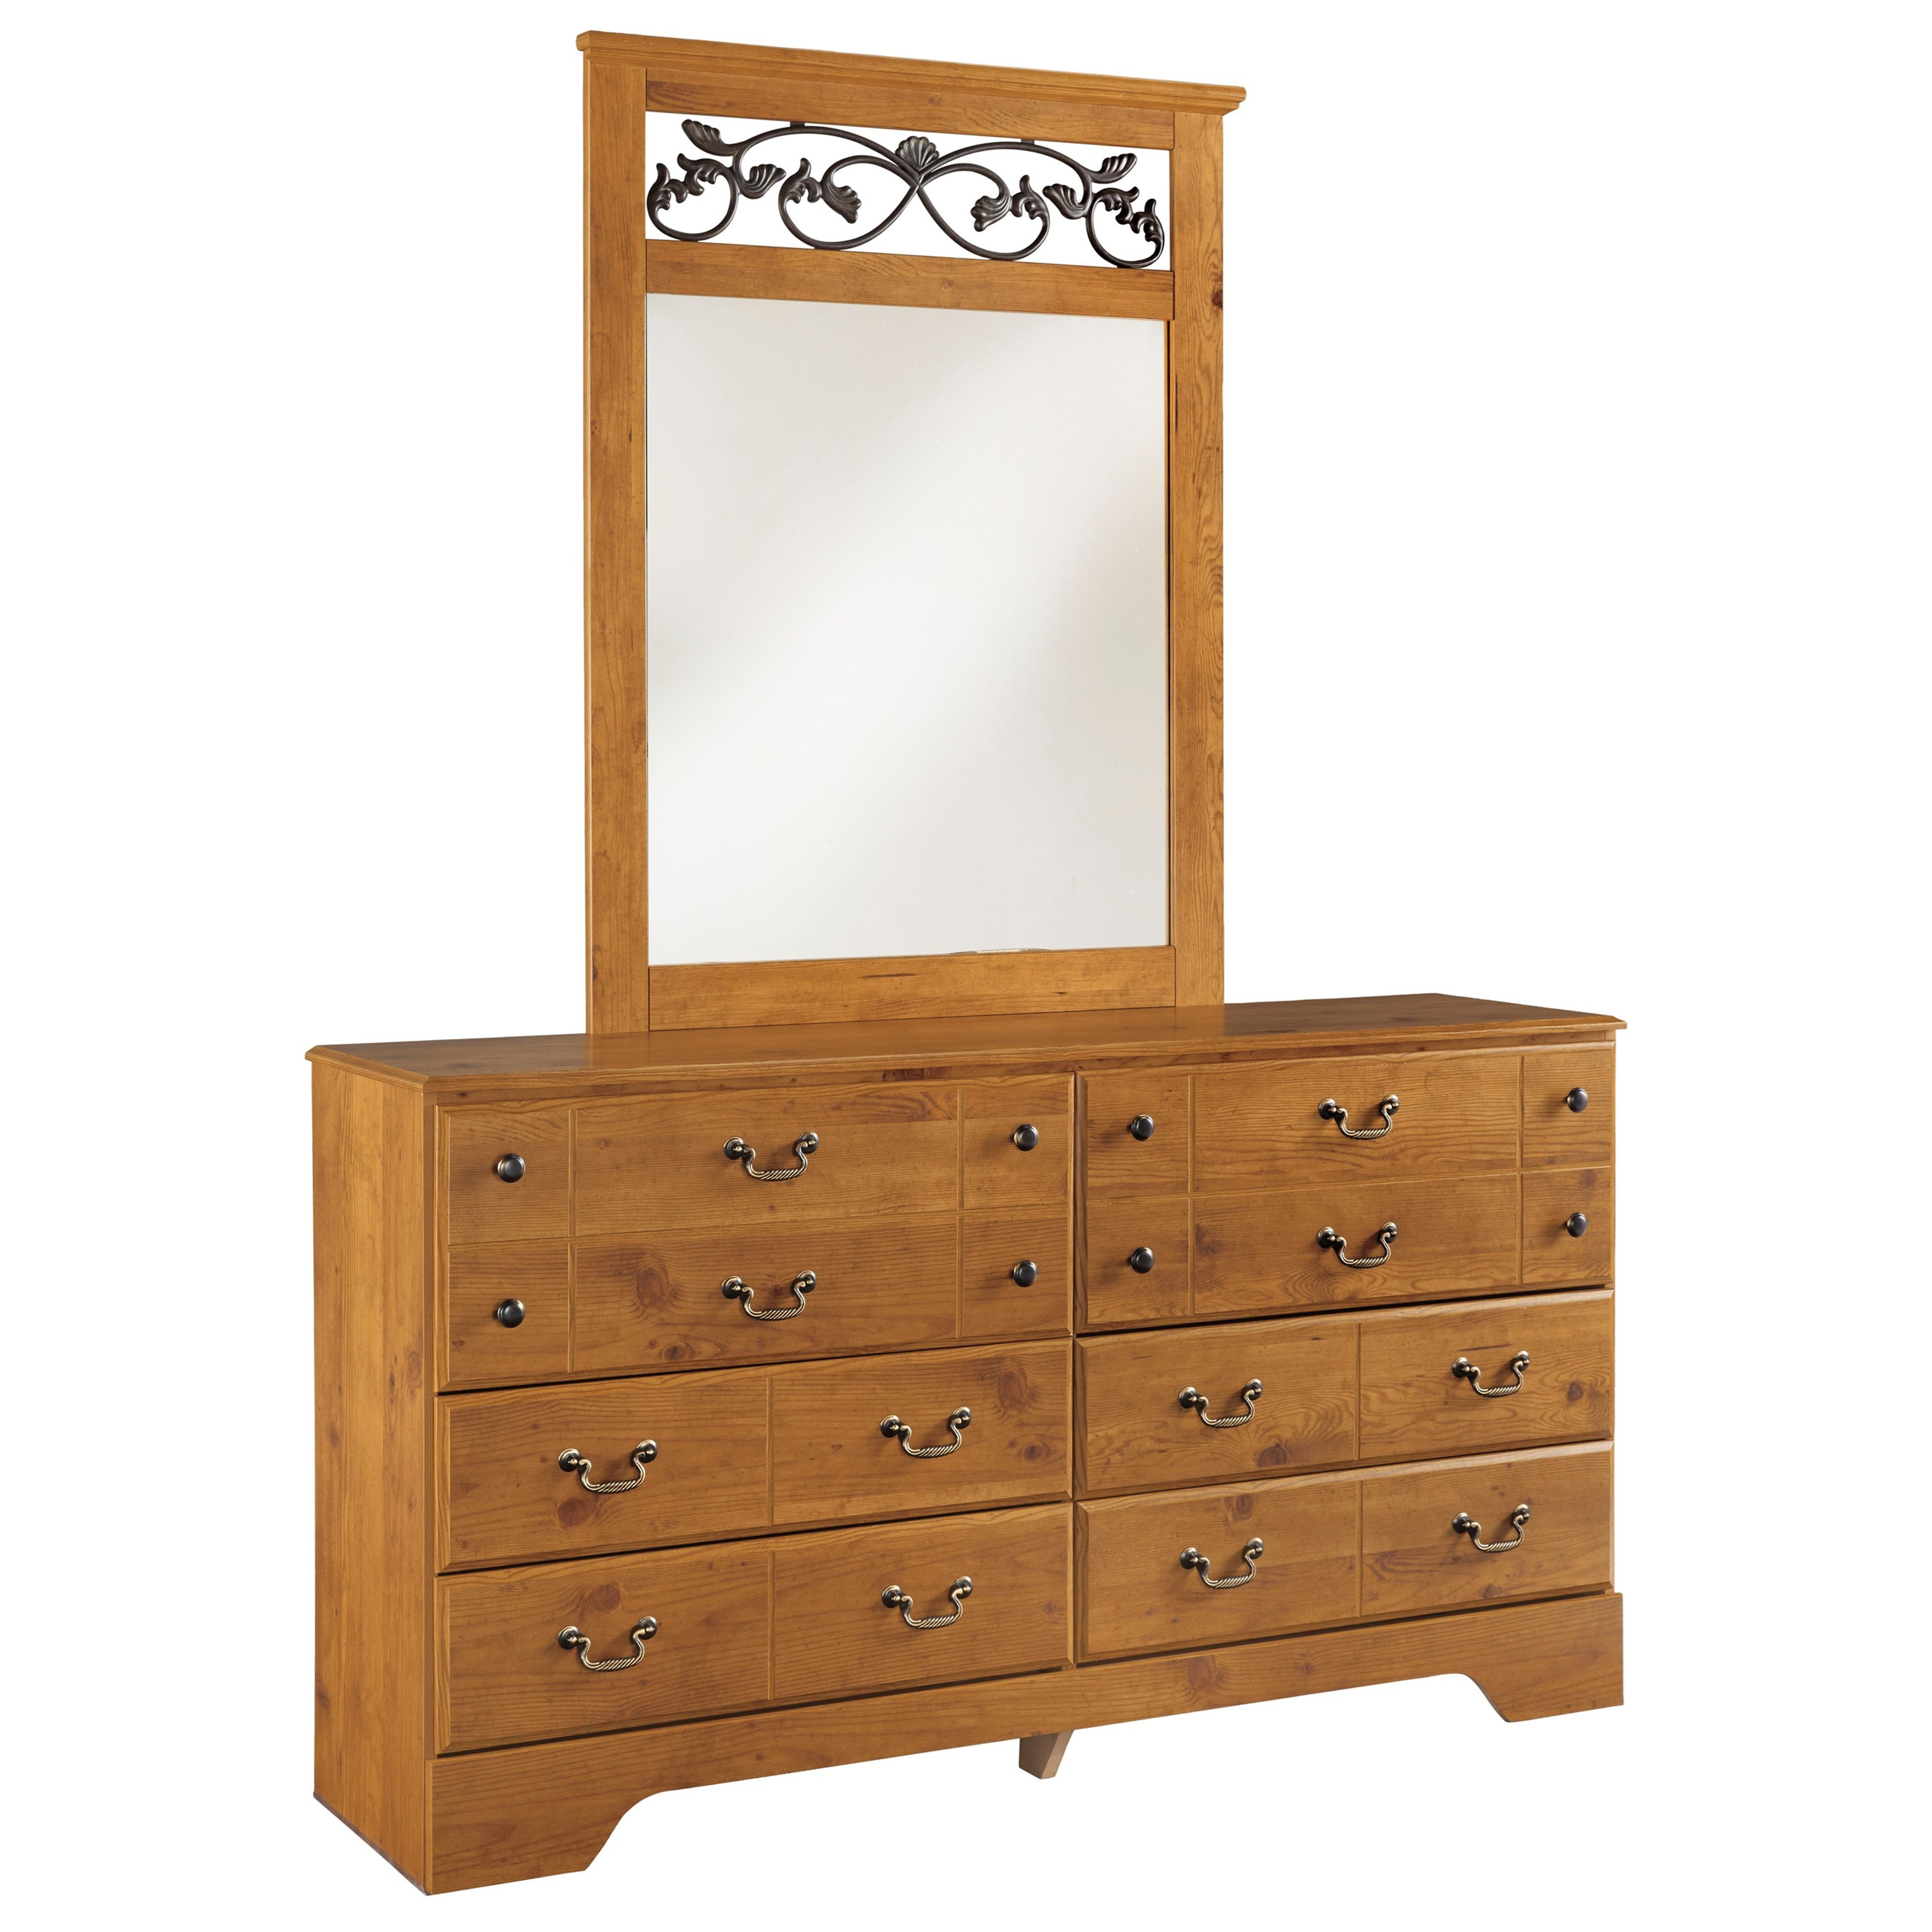 Bittersweet 6 Drawer Dresser and Mirror by Signature Design by Ashley at Northeast Factory Direct